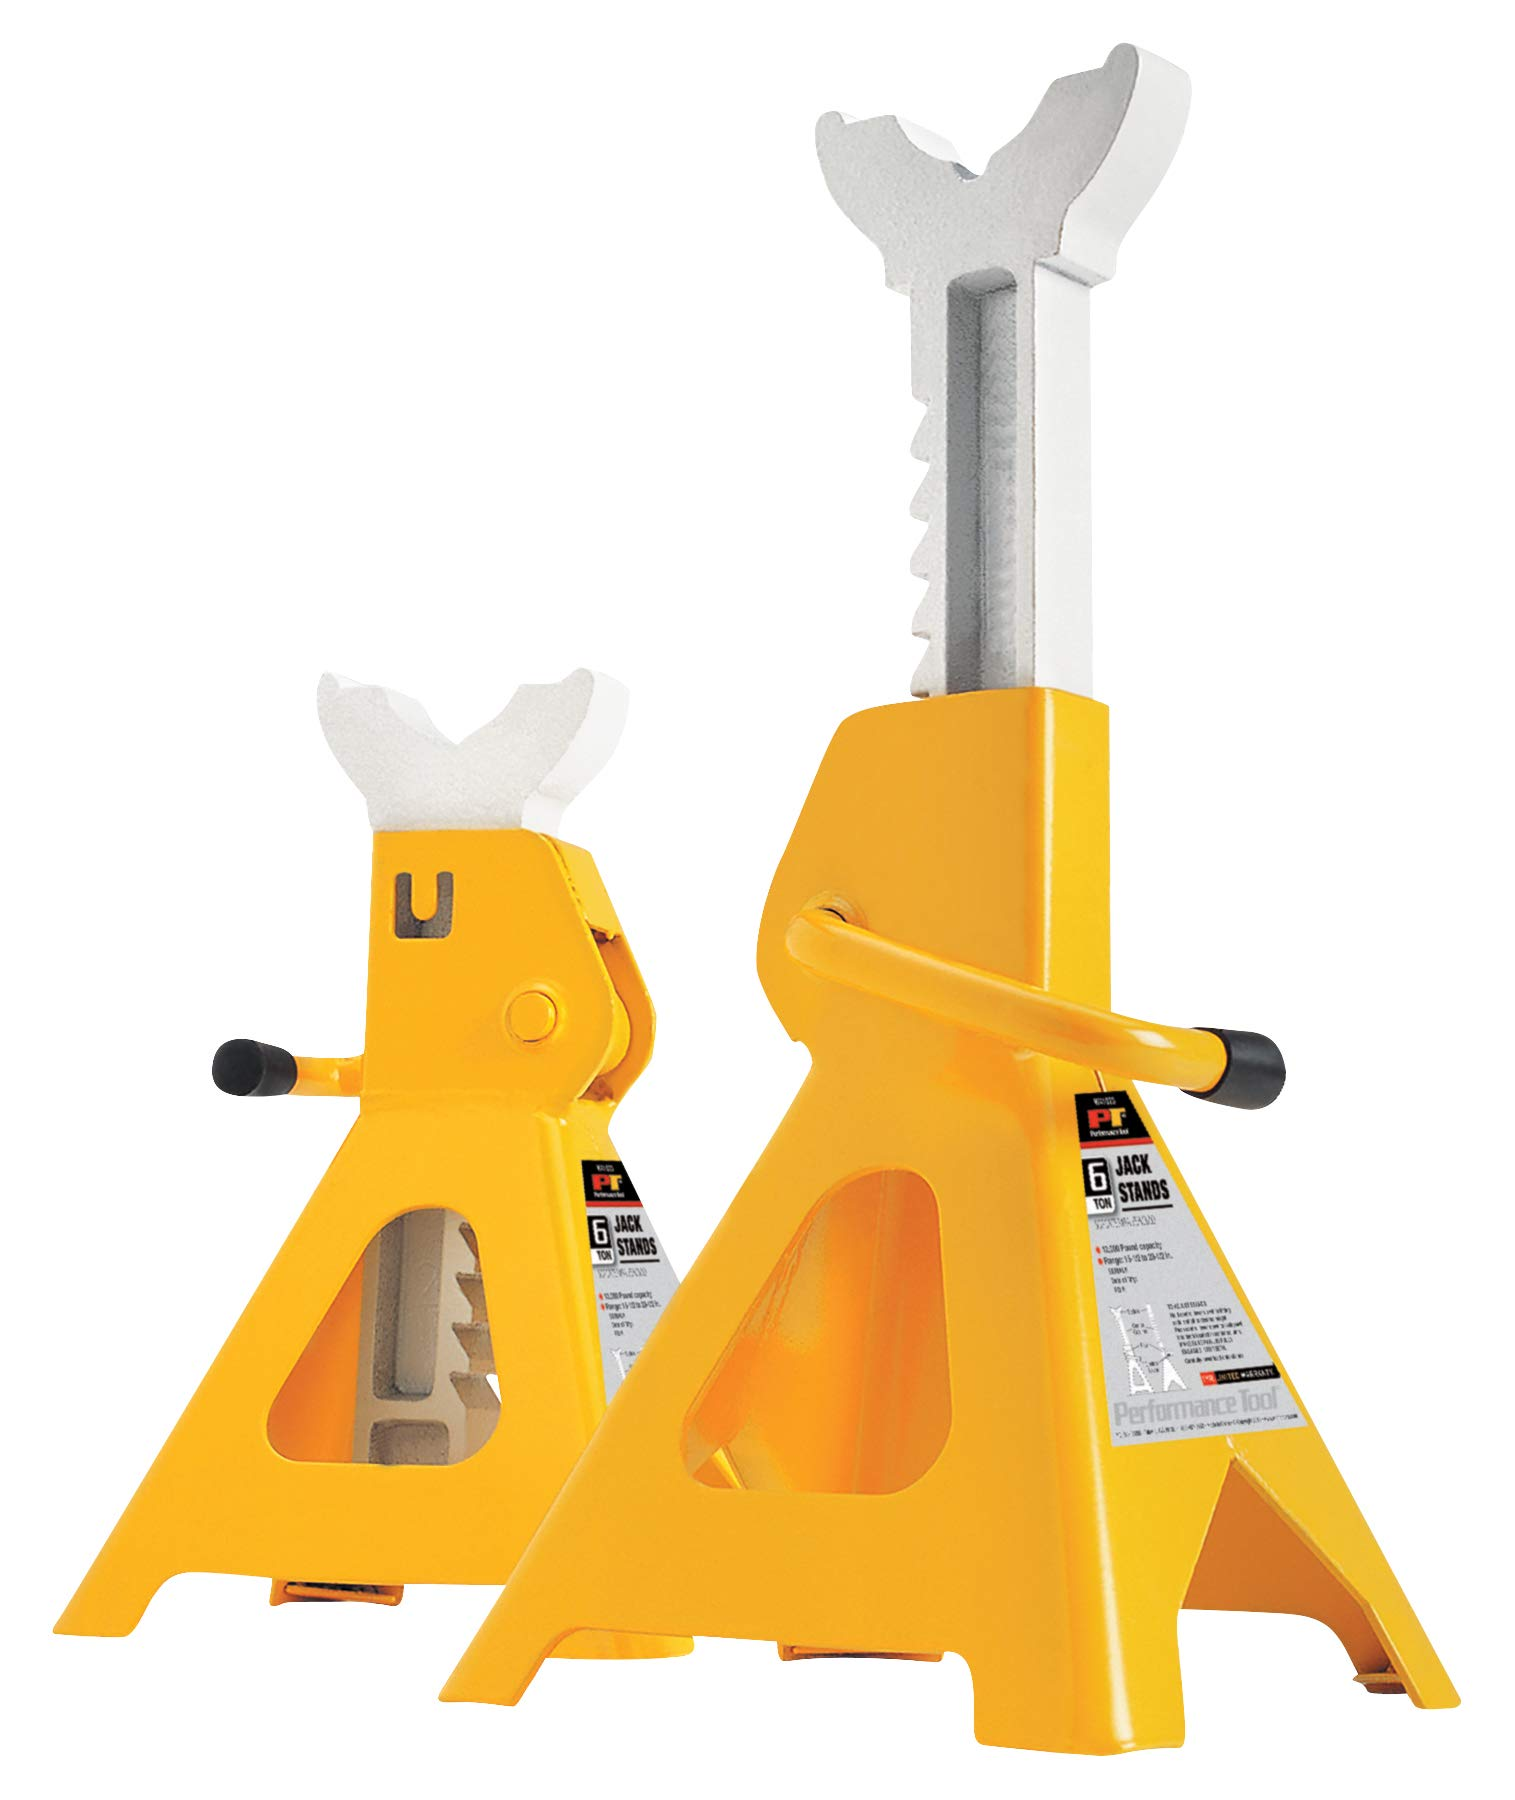 Performance Tool W41023 6 Ton (12,000 lbs.) Capacity Heavy Duty Jack Stand set by Performance Tool